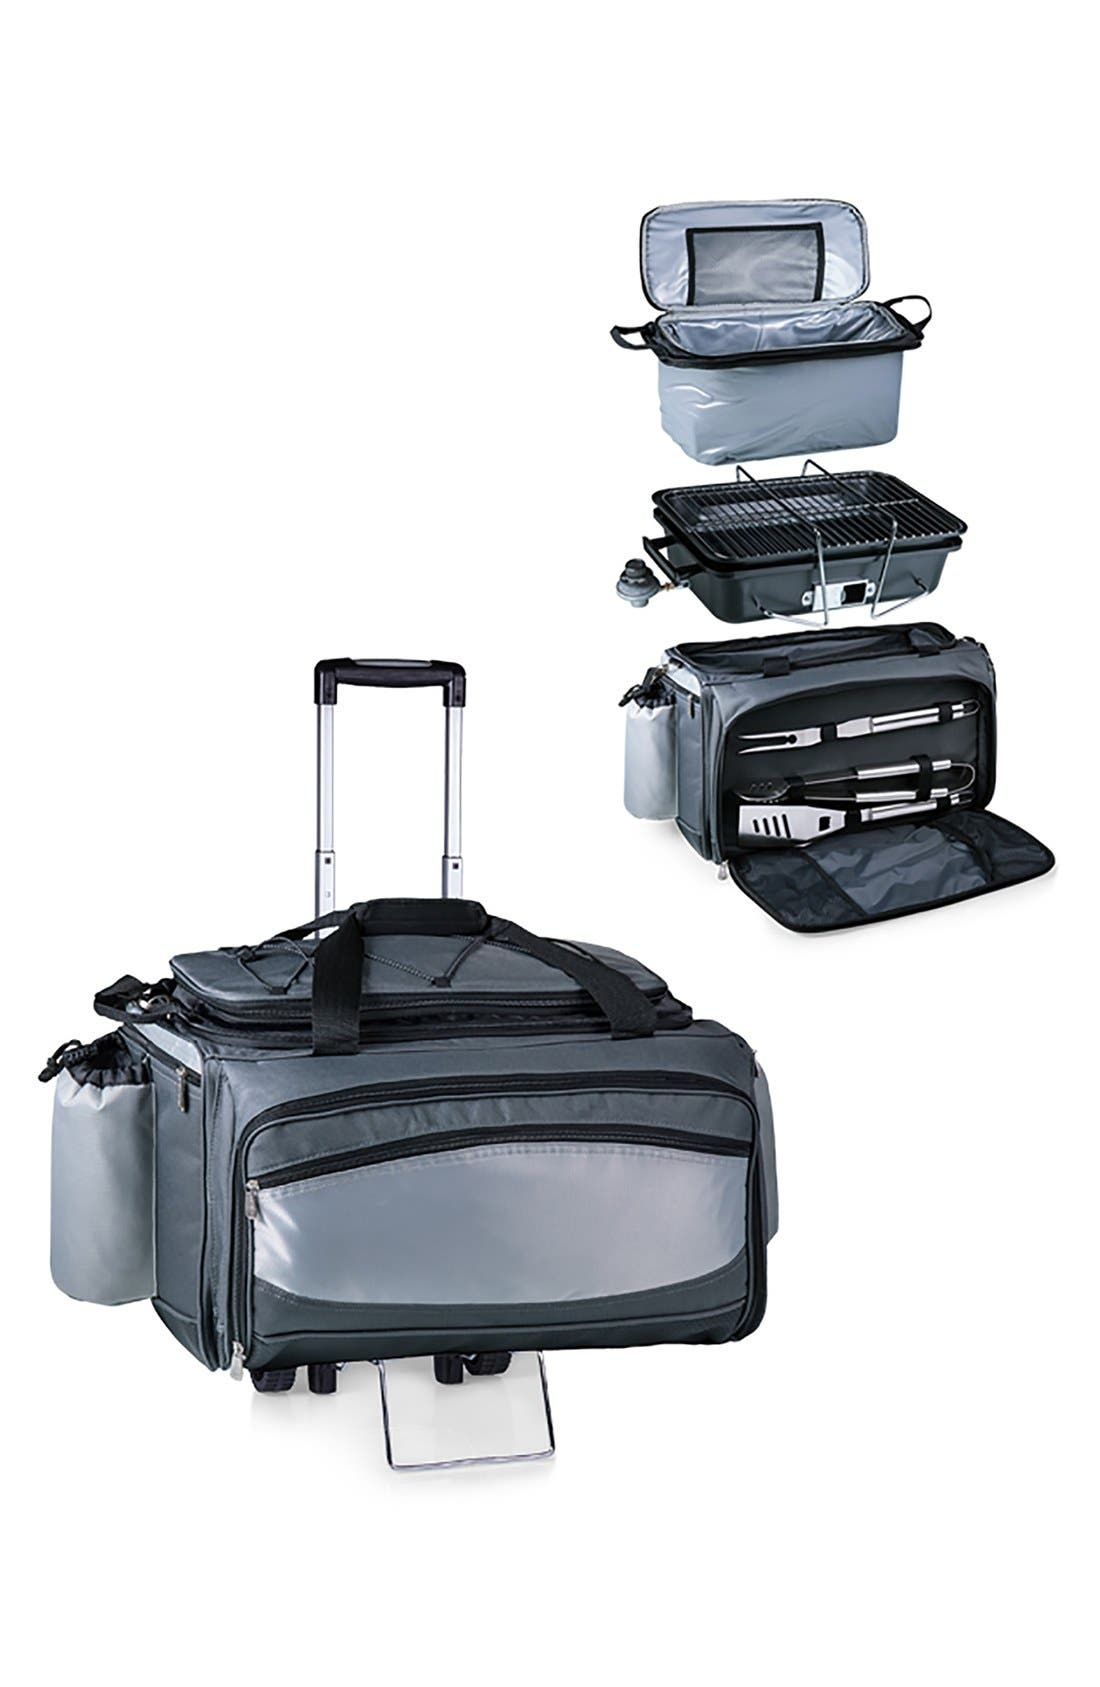 'Vulcan' Barbecue Grill & Cooler Trolley,                         Main,                         color, Black